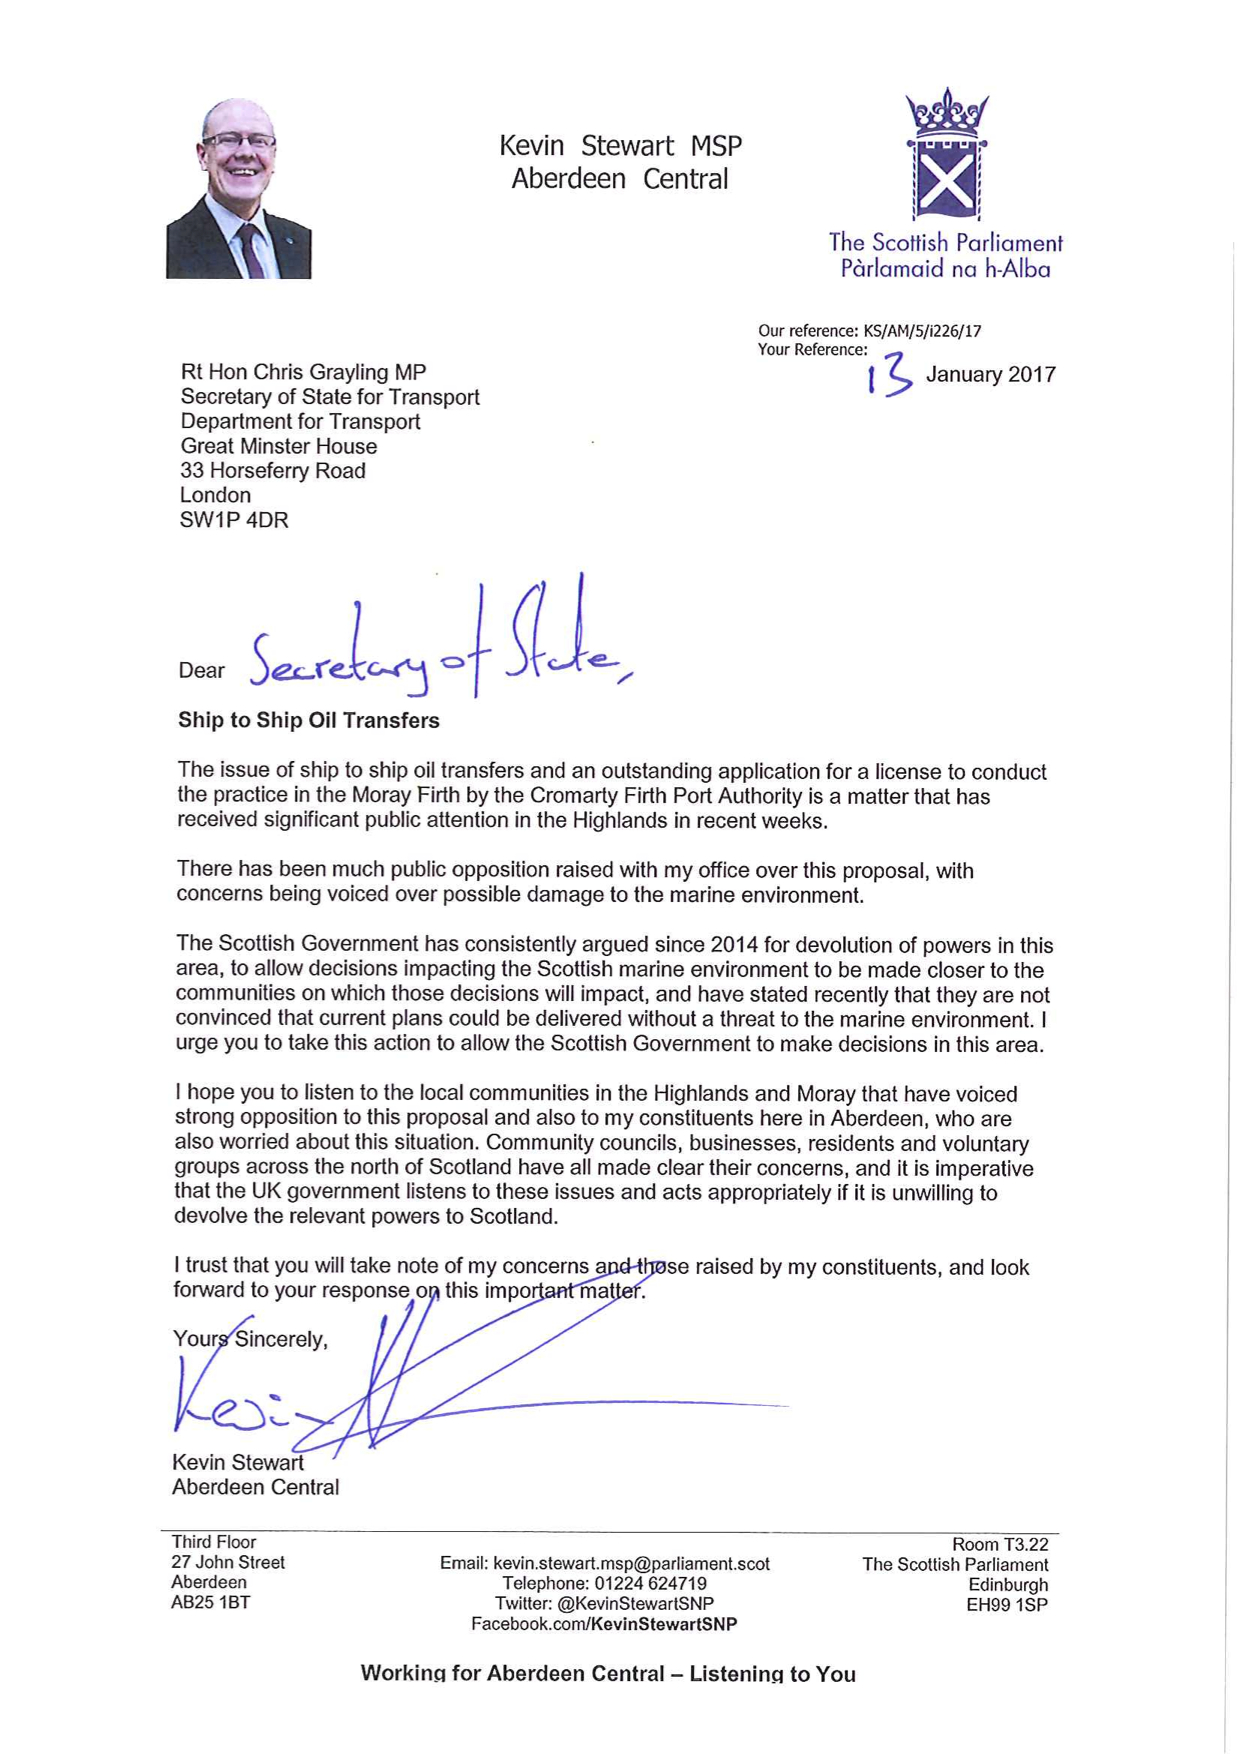 oil leak 97 a letter from kevin stewart msp – cromarty rising